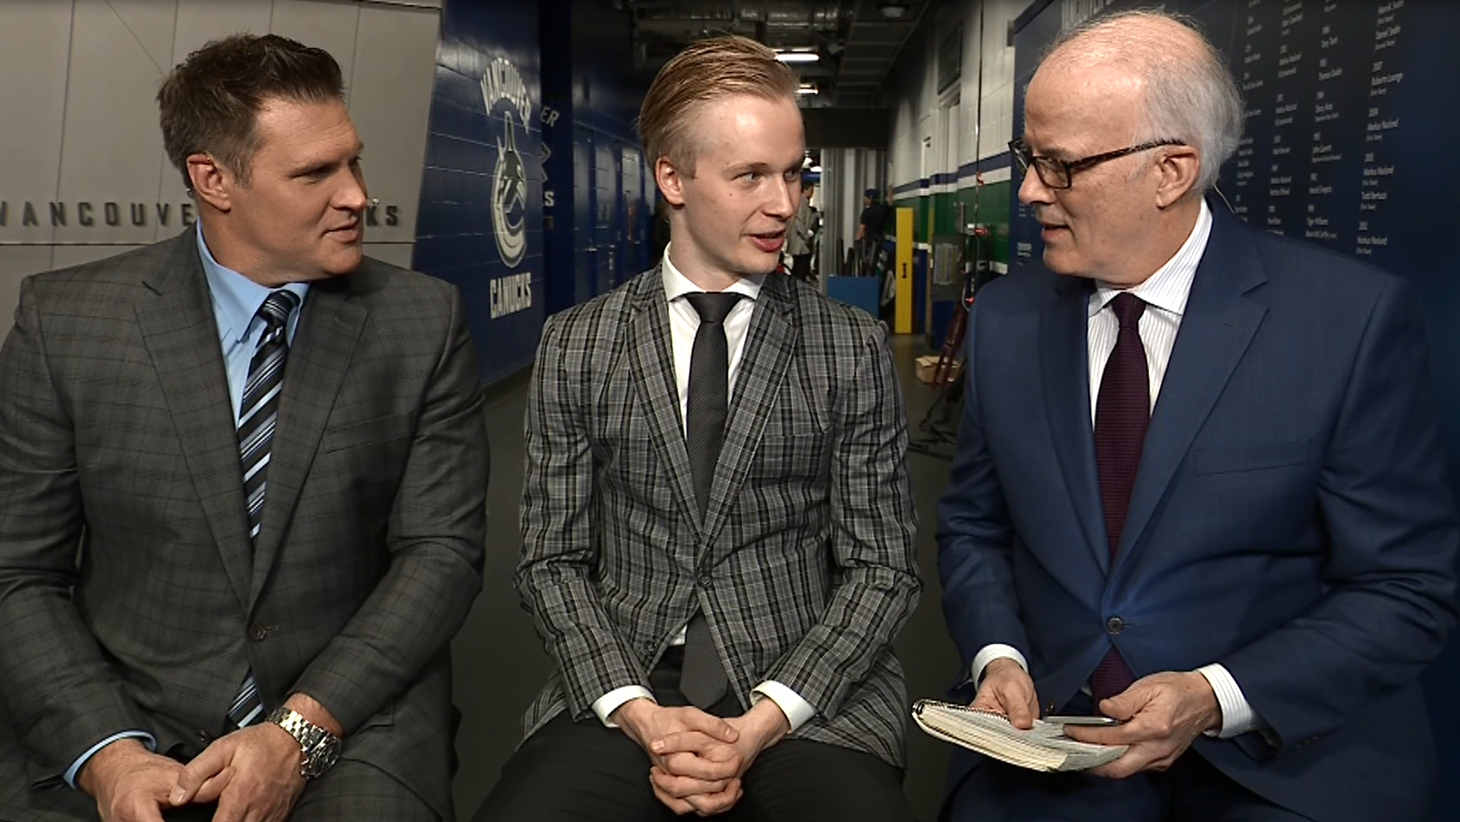 Surfin' With The Alien. Elias Pettersson On After Hours.